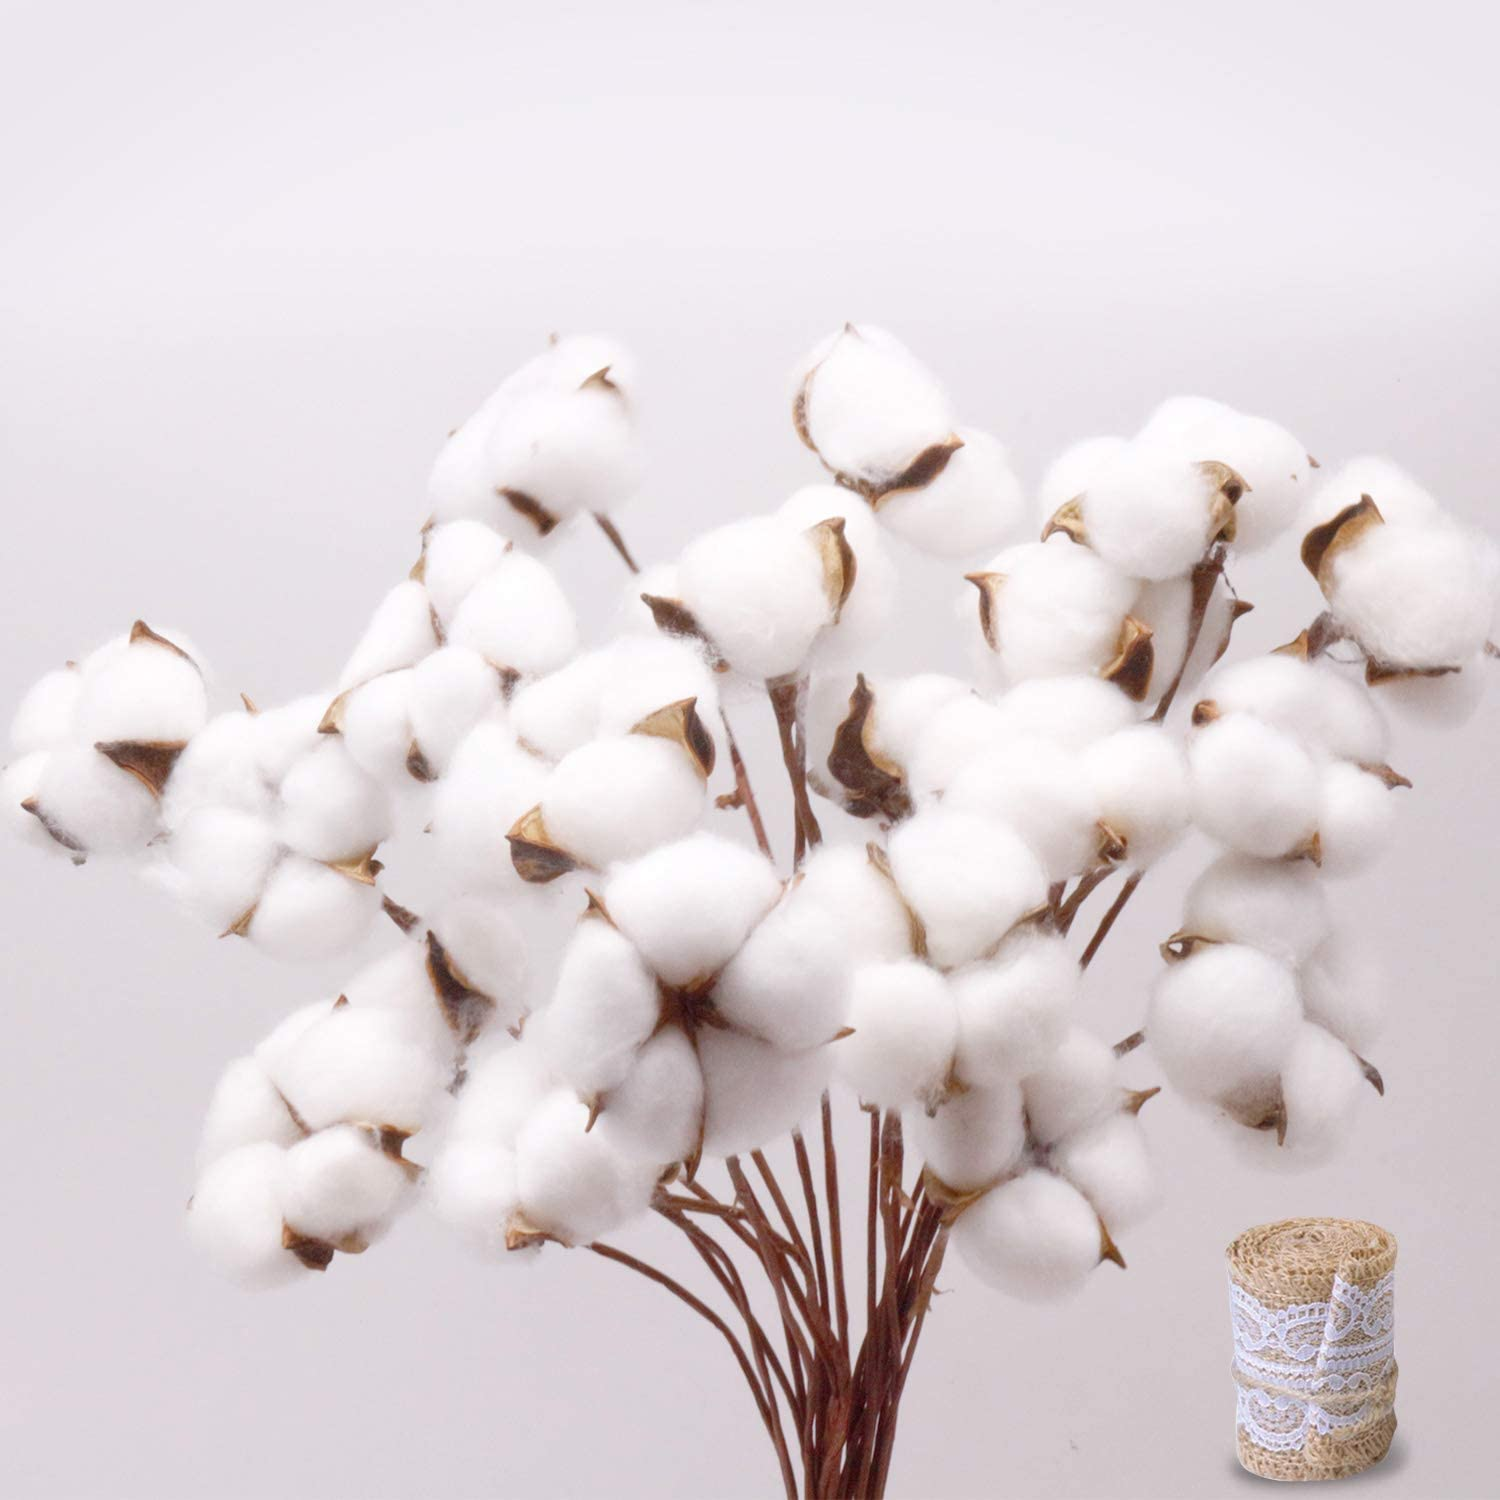 White 20 Pack Natural White Cotton Stems Dried Flower Branch Bundle Premium Fall Arrangements with Natural Laces Burlap Craft Lace Ribbon Roll for DIY Design Christmas Decoration Corrugated Package